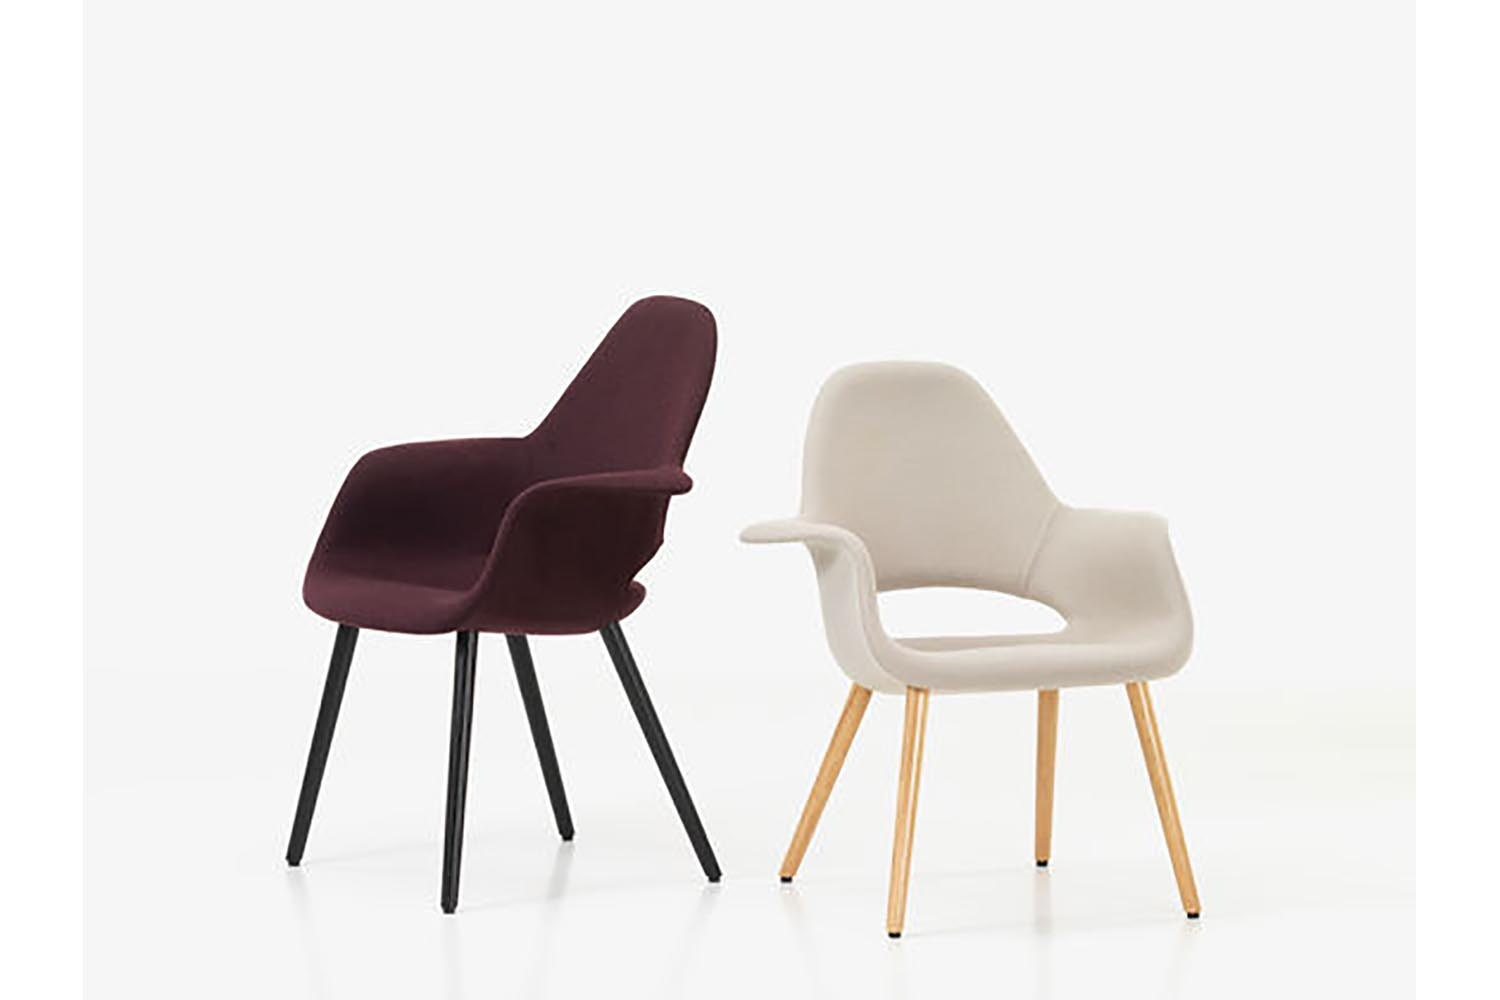 saarinen organic chair. Organic Conference Chair With Arms By Charles Eames \u0026 Eero Saarinen For Vitra. Share